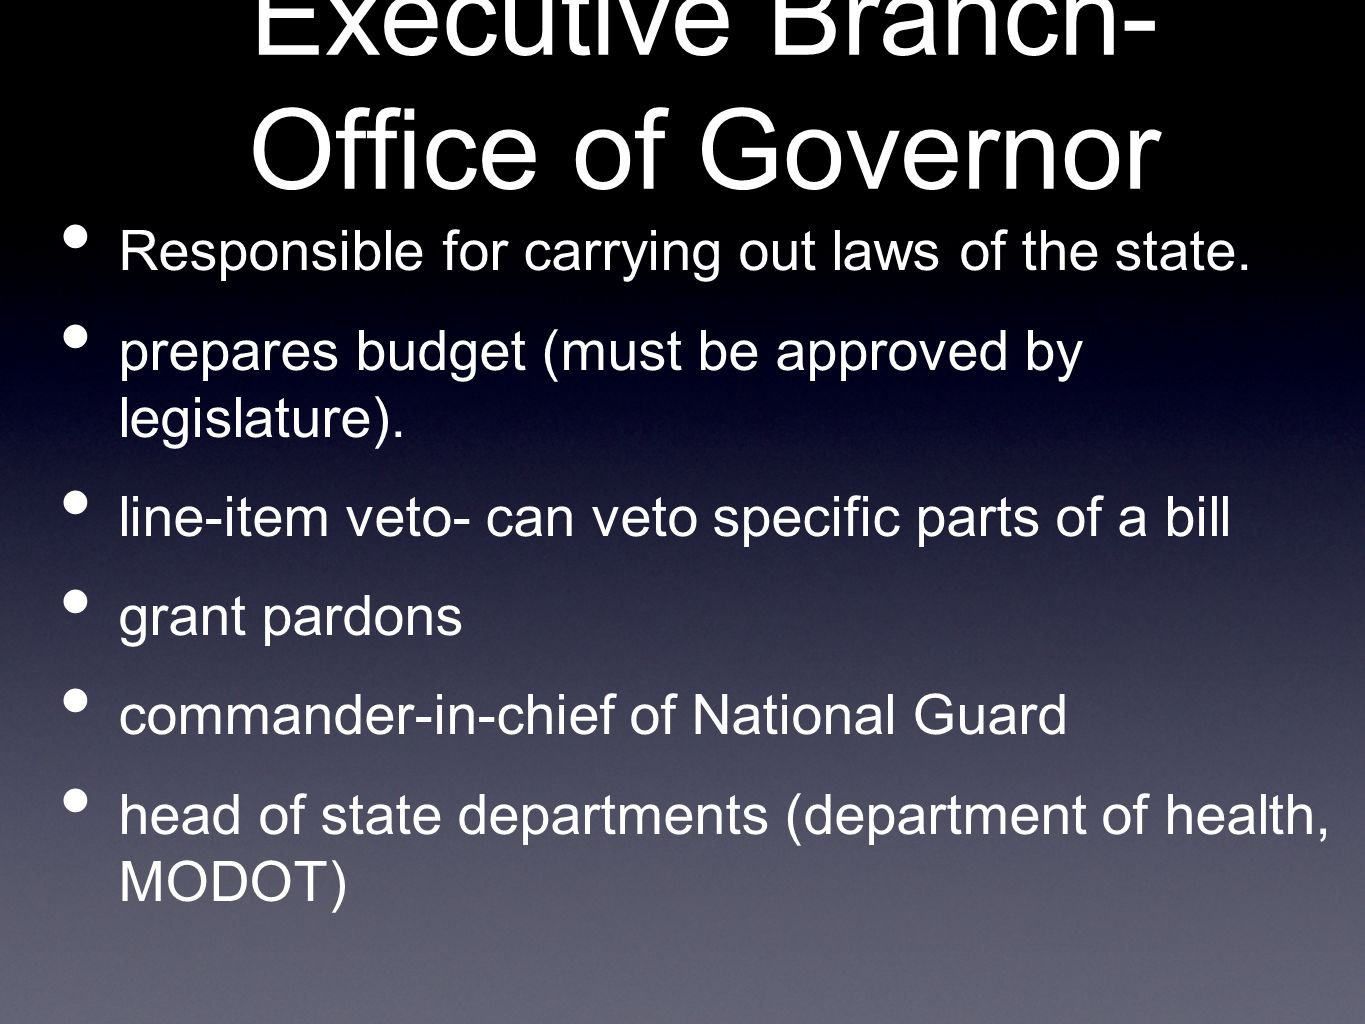 Executive Branch- Office of Governor Responsible for carrying out laws of the state.